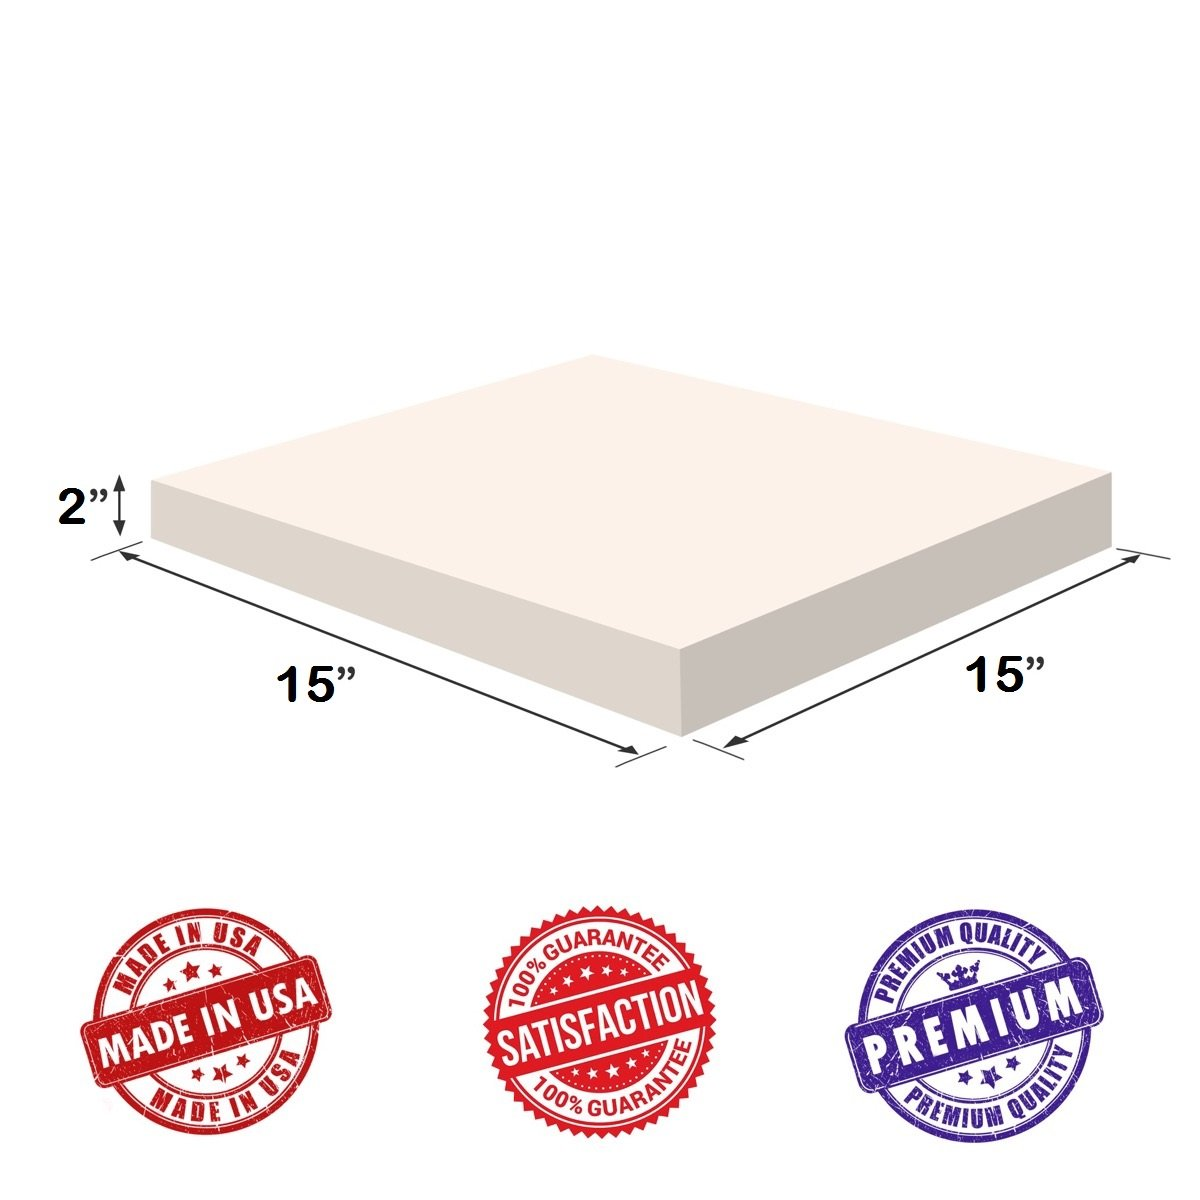 Chair Cushions Pillows Doctor Recommended for Backache /& Bed Sores by Dream Solutions USA Upholstery Visco Memory Foam Square Sheet- 3.5 lb High Density 2x15x15- Luxury Quality for Sofa